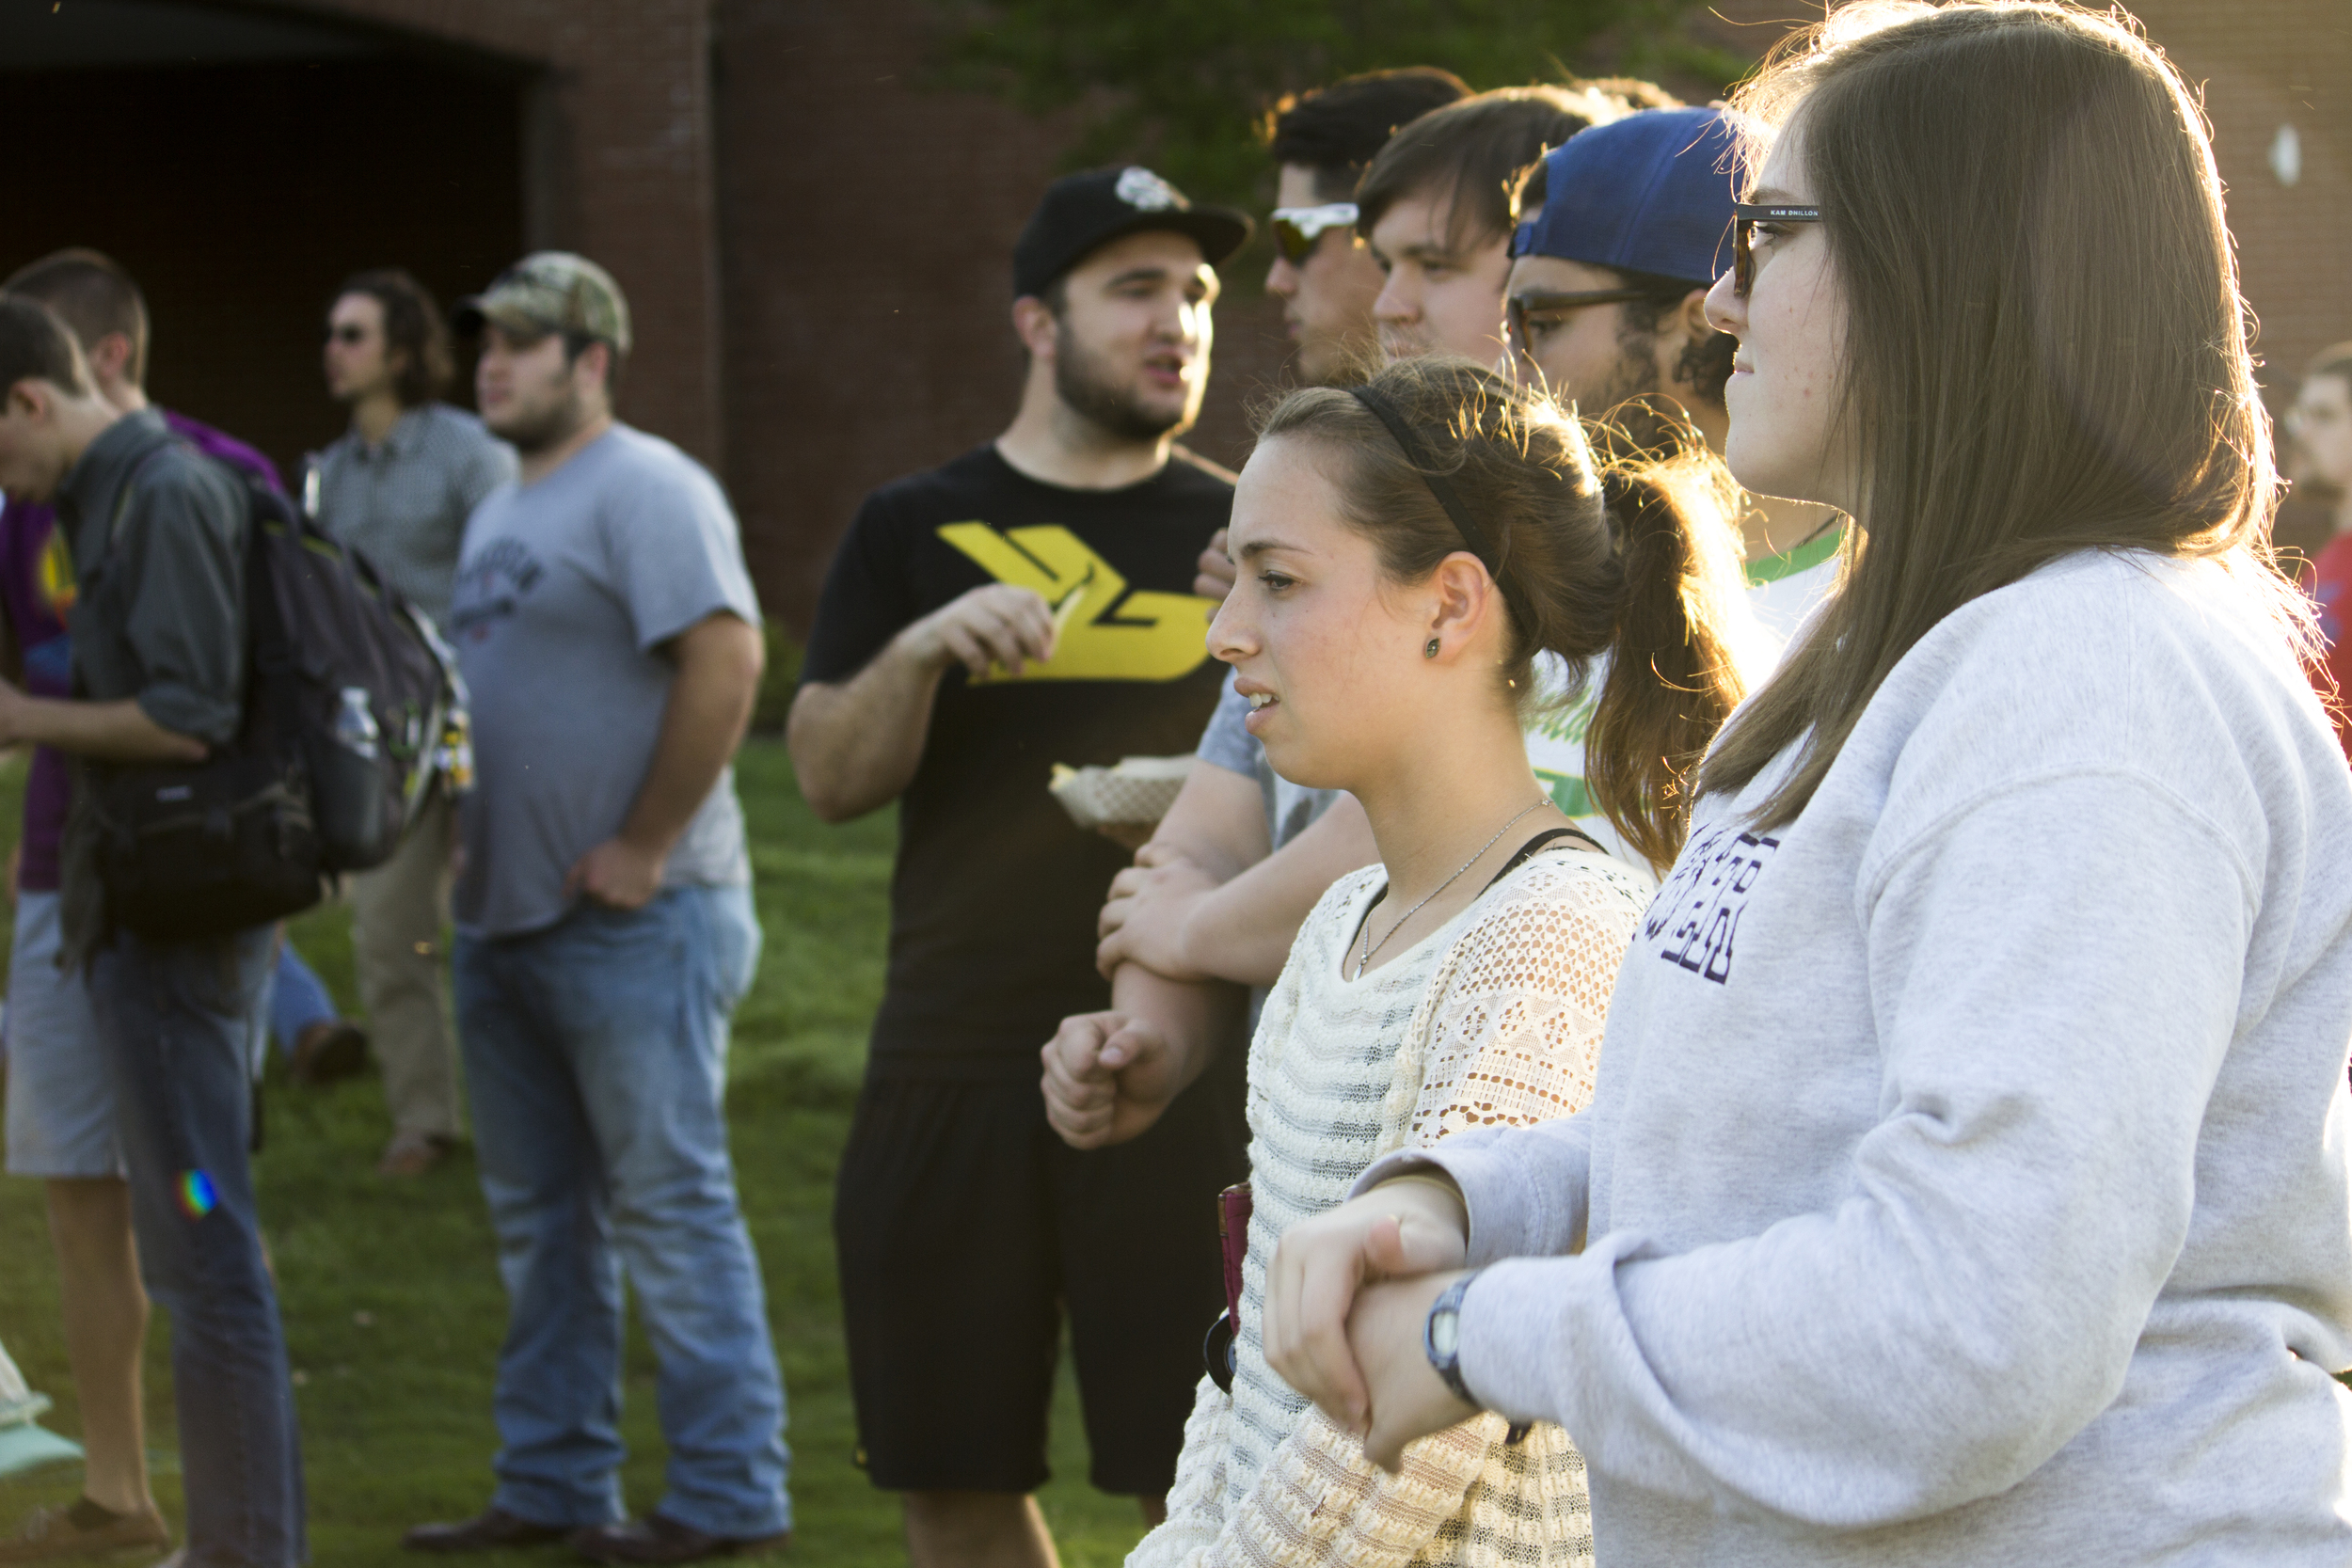 The day had great weather, which drew a nice crowd to come out and cheer on their peers in the different bands.